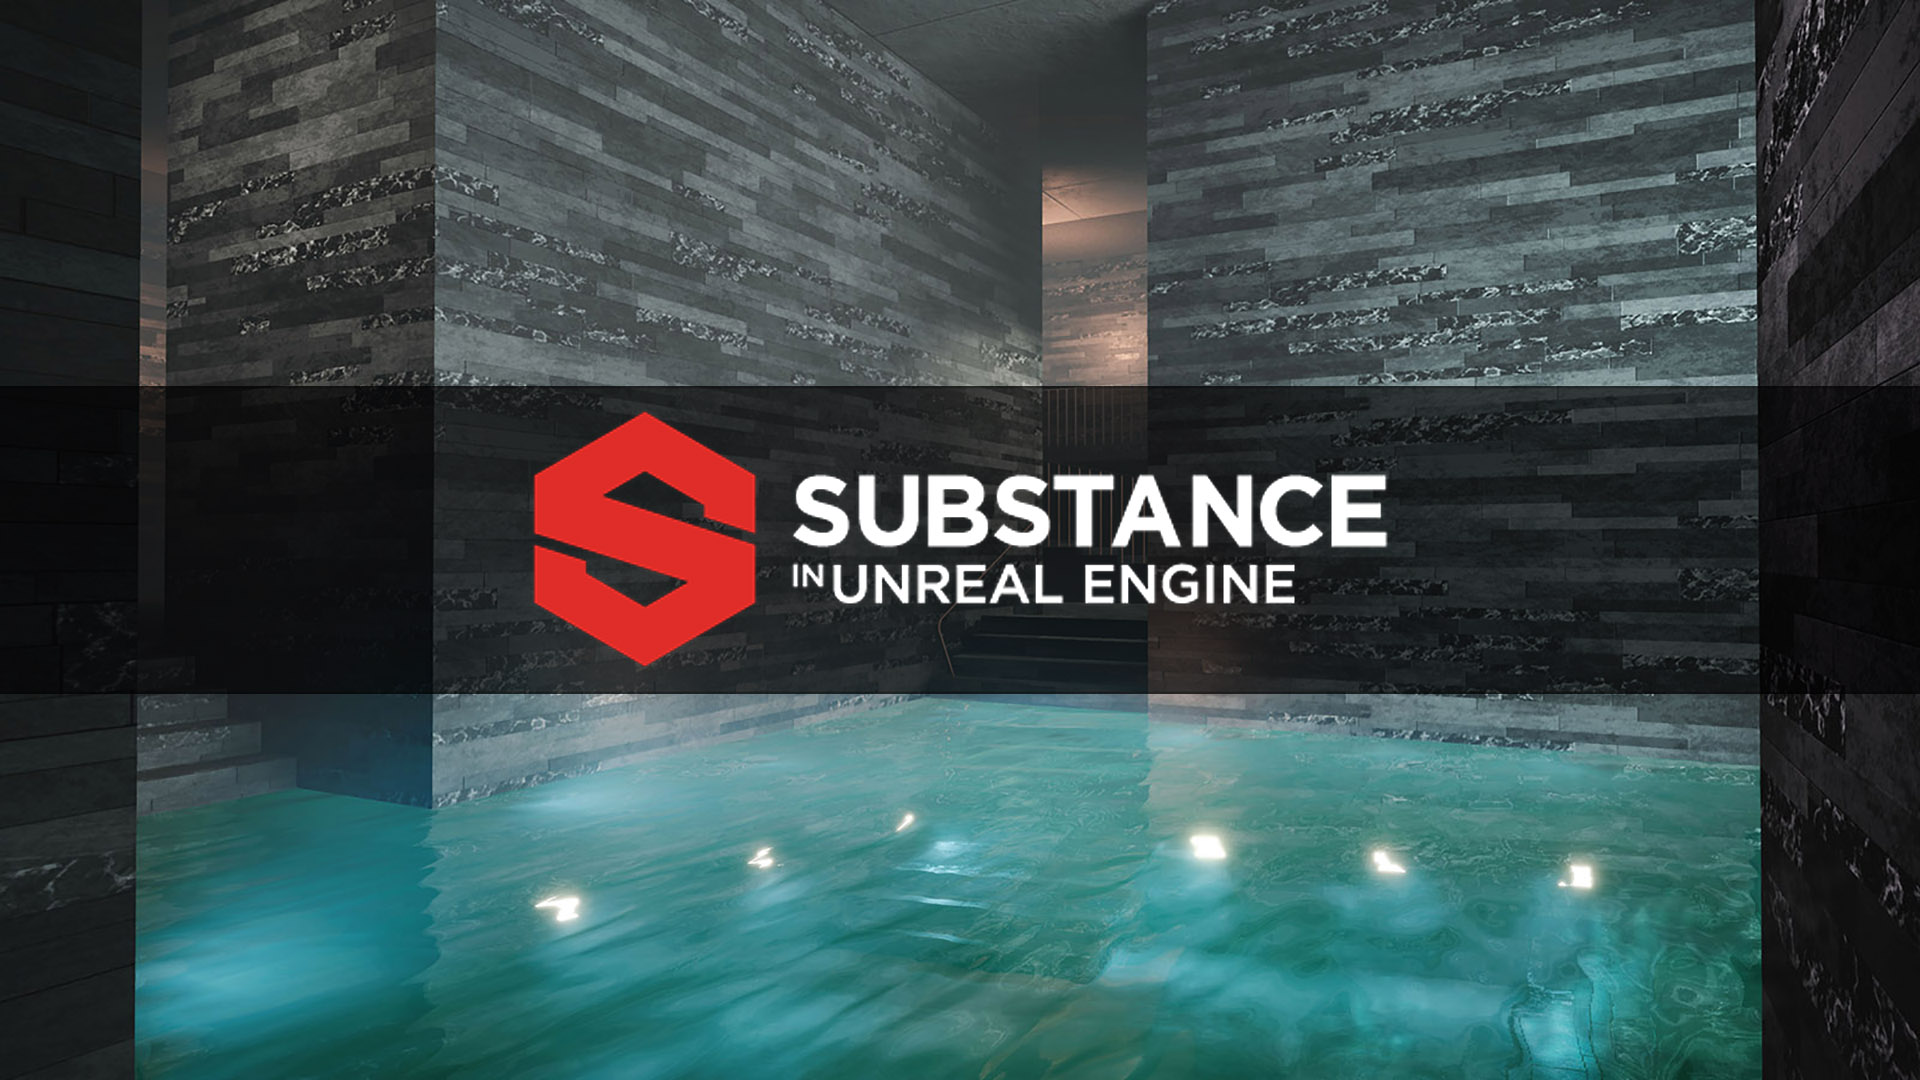 Substance in Unreal Engine by Allegorithmic in Code Plugins